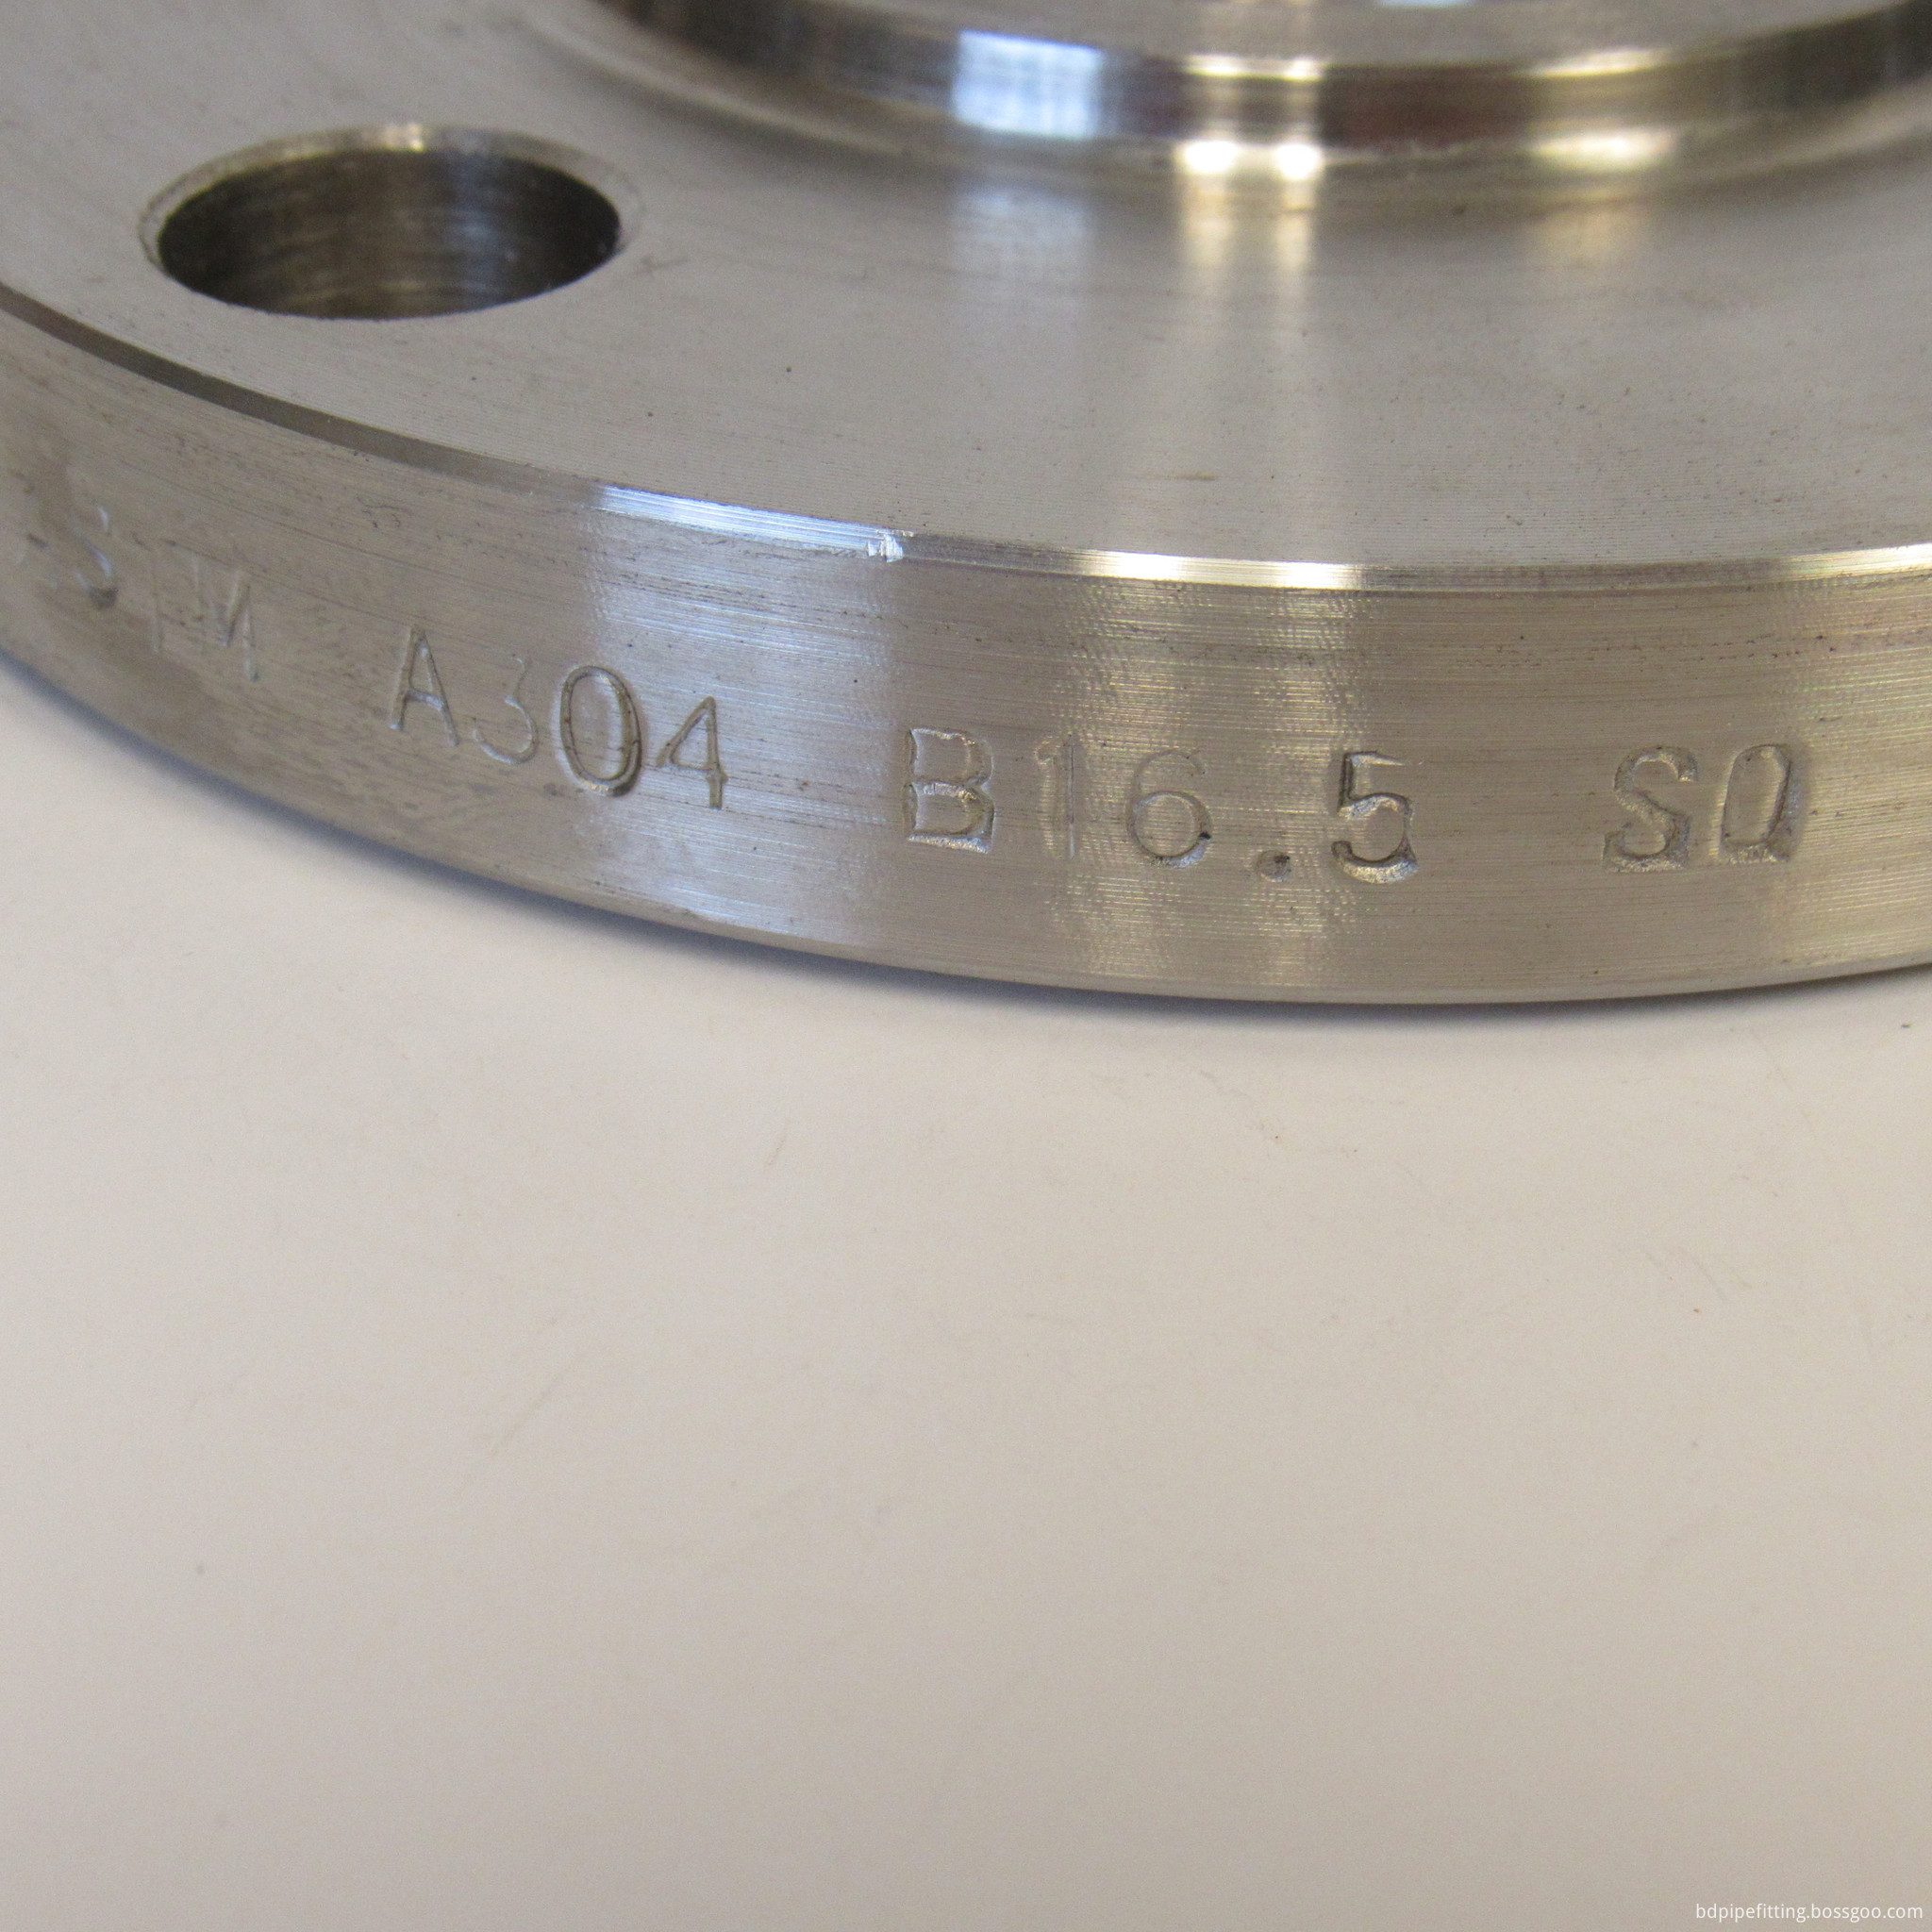 Stainless Steel Lap Joint Flange (F304, F310, F316)